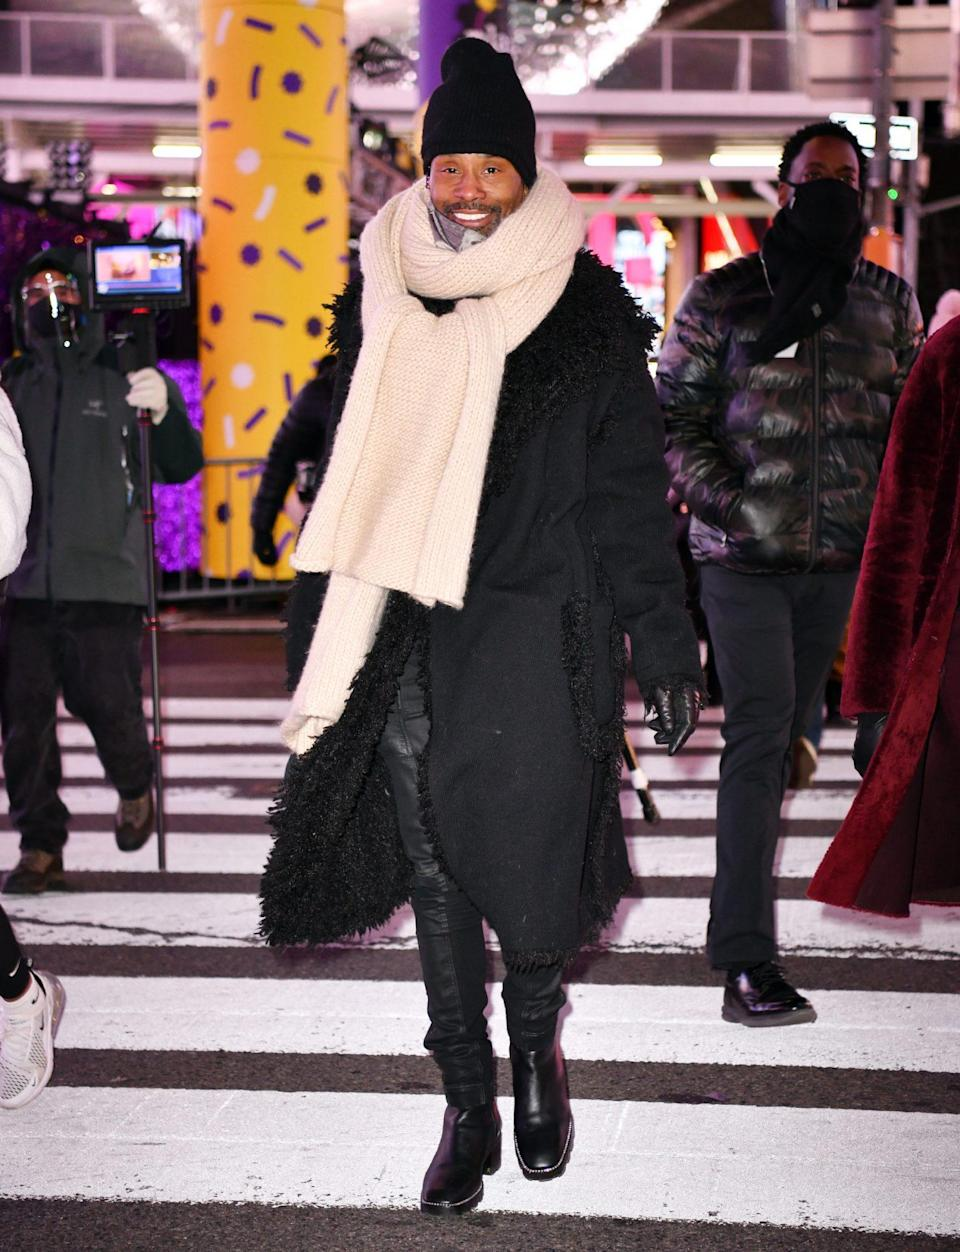 <p>Billy Porter sports a big smile on Tuesday during rehearsals for ABC's <em>Dick Clark's New Year's Rockin' Eve </em>in New York City's Times Square.</p>